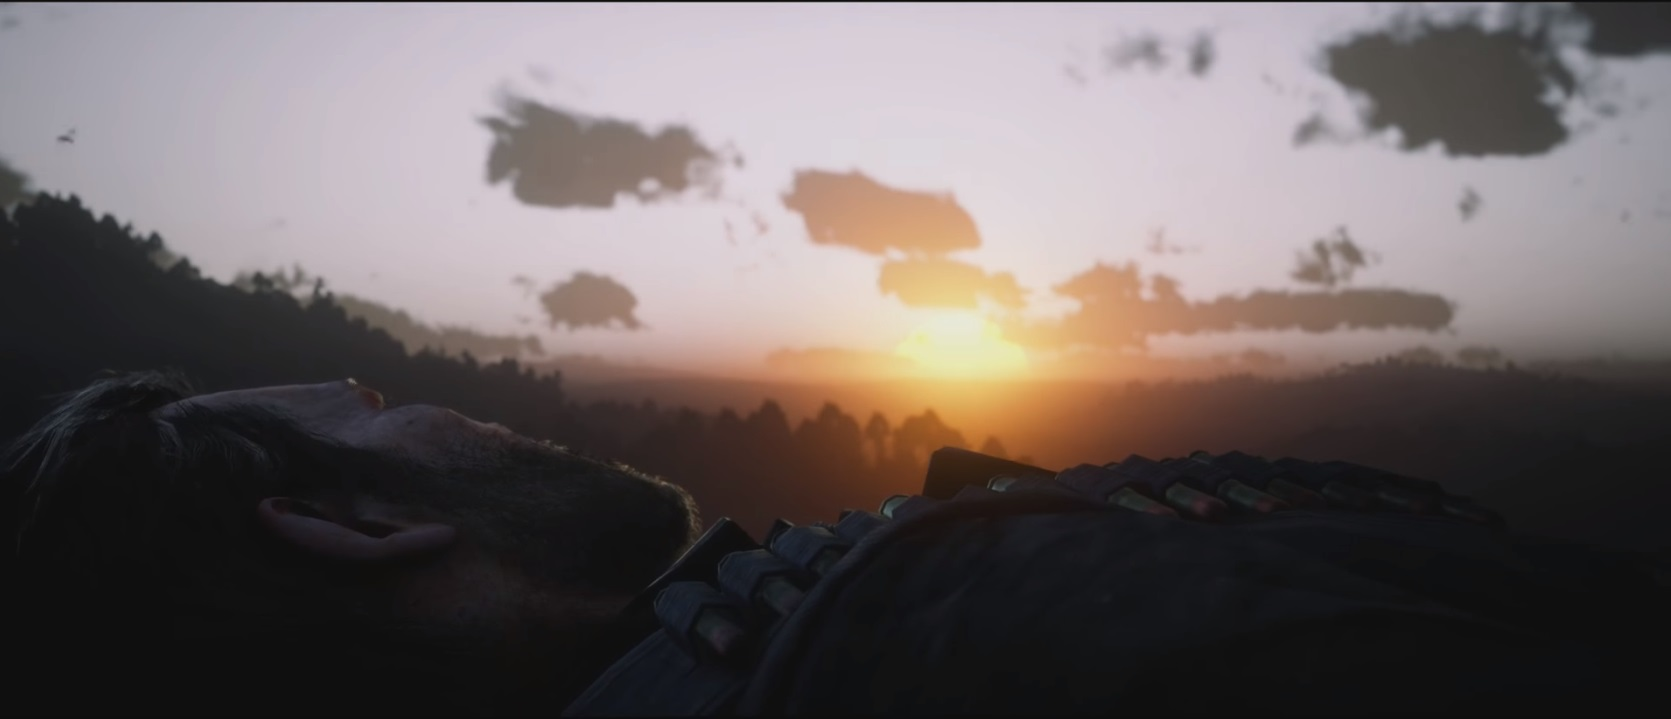 Red Dead Redemption 2 Spoilers FAQ Endings, Deaths and More